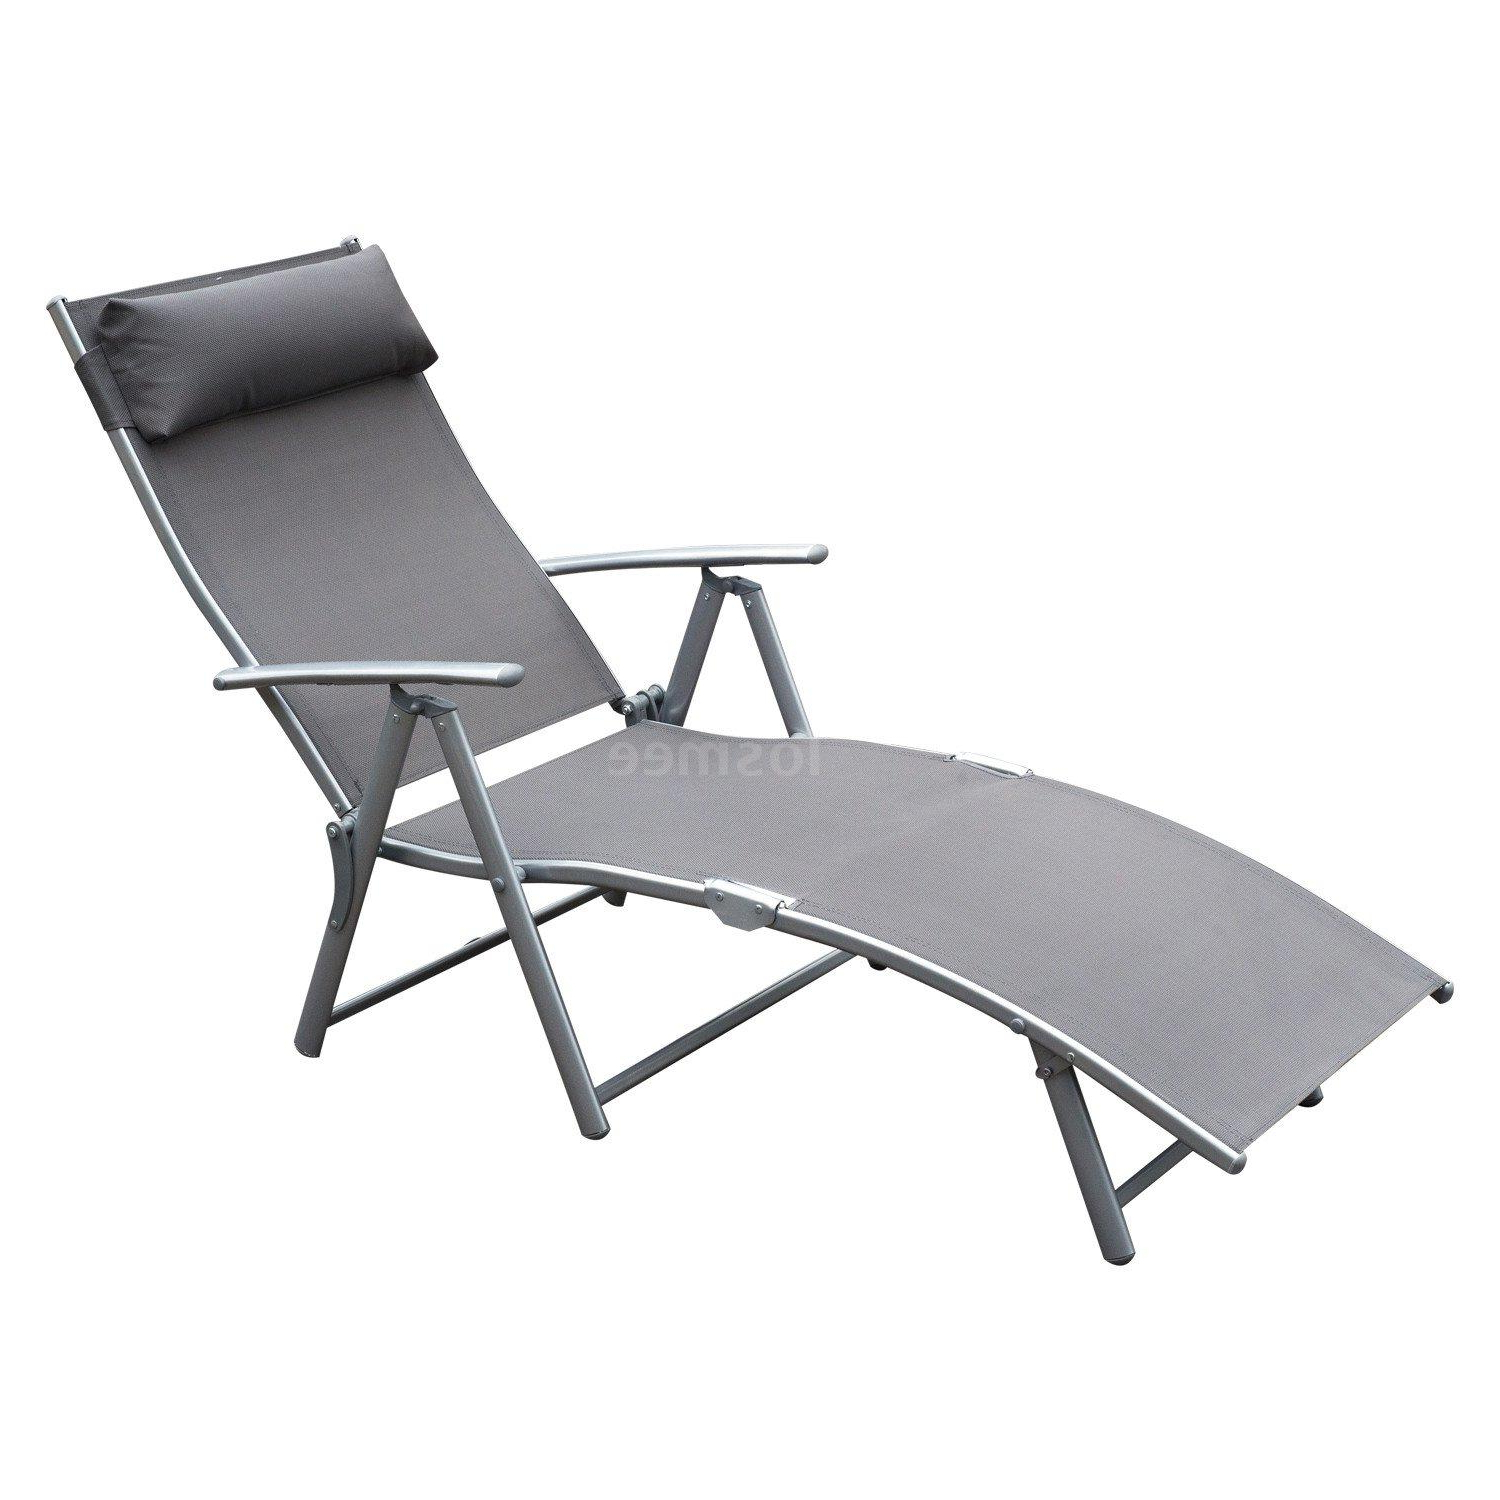 Popular Steel Sling Fabric Outdoor Folding Chaise Lounges Inside Details About Steel Sling Fabric Outdoor Folding Chaise Lounge Chair Recliner – Grey Y4l1 (Gallery 1 of 25)